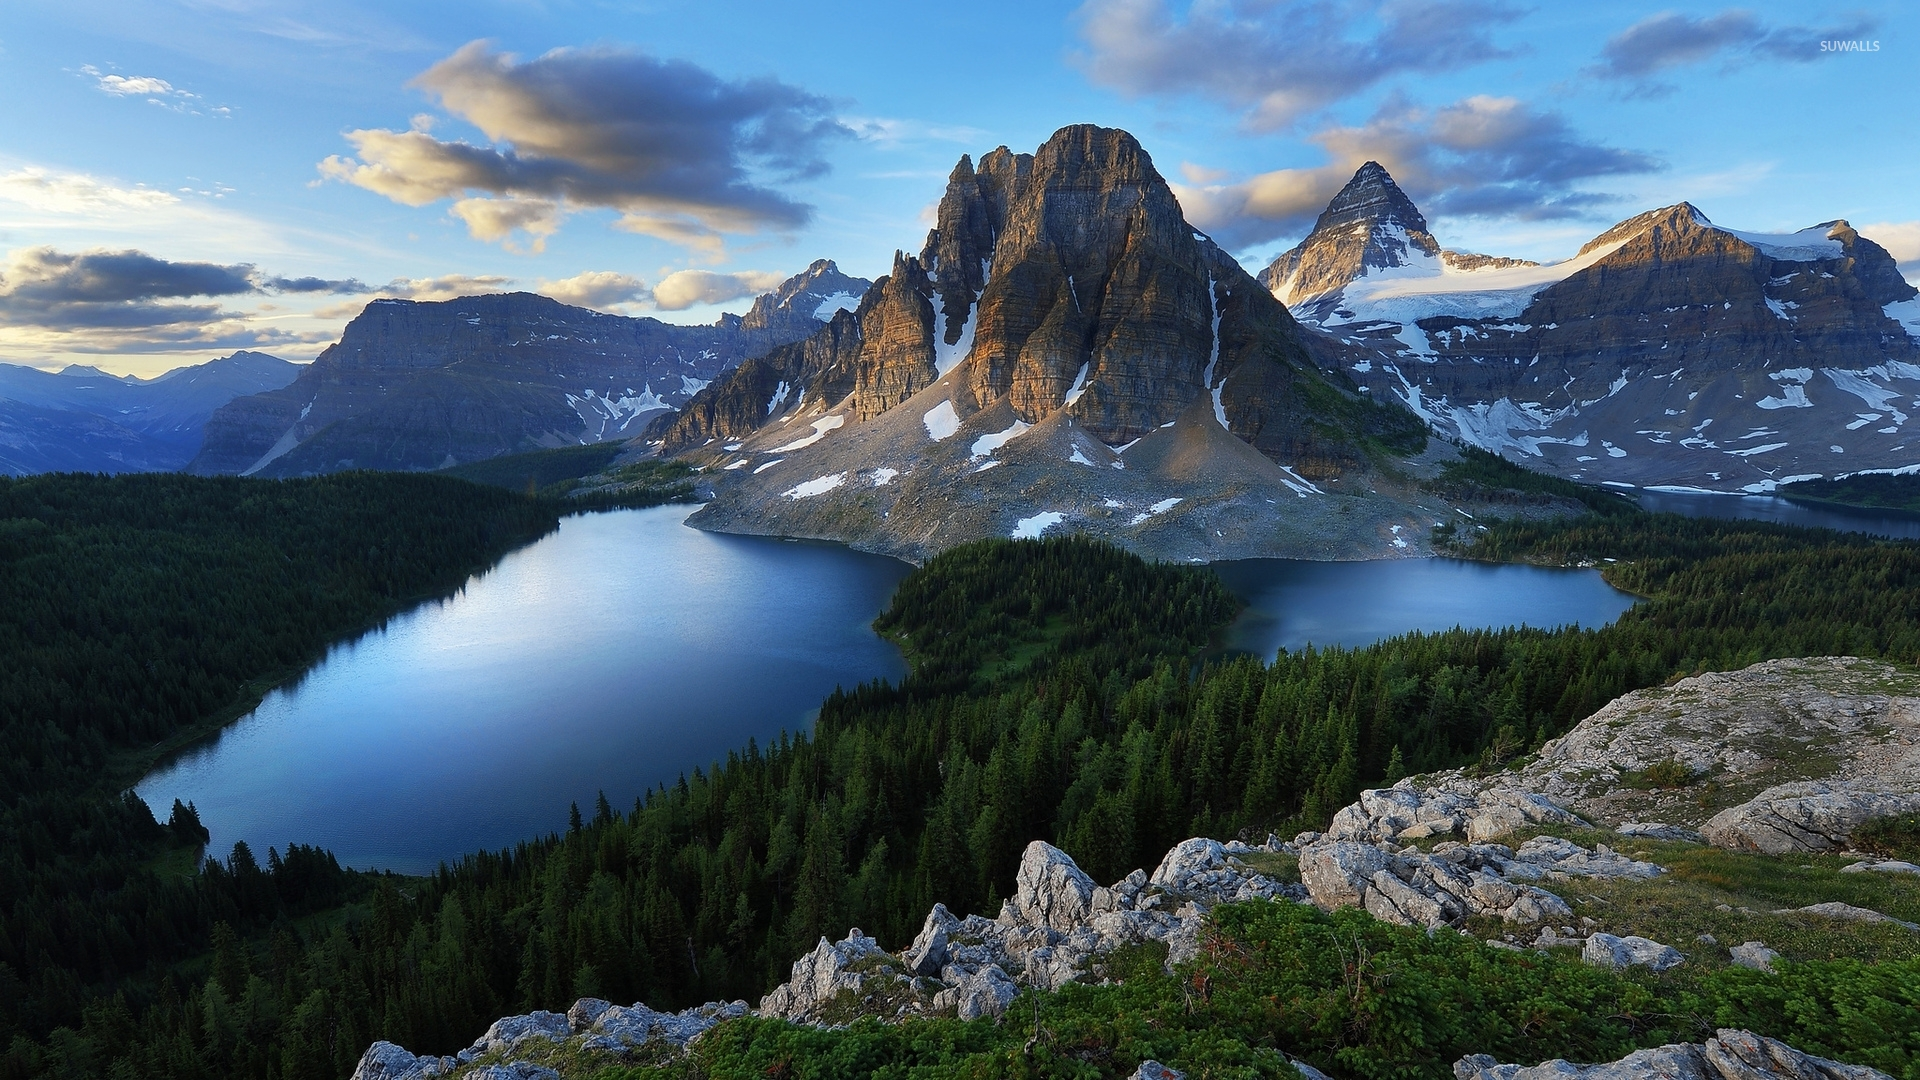 Mount Assiniboine Wallpapers and Background Images   stmednet 1920x1080